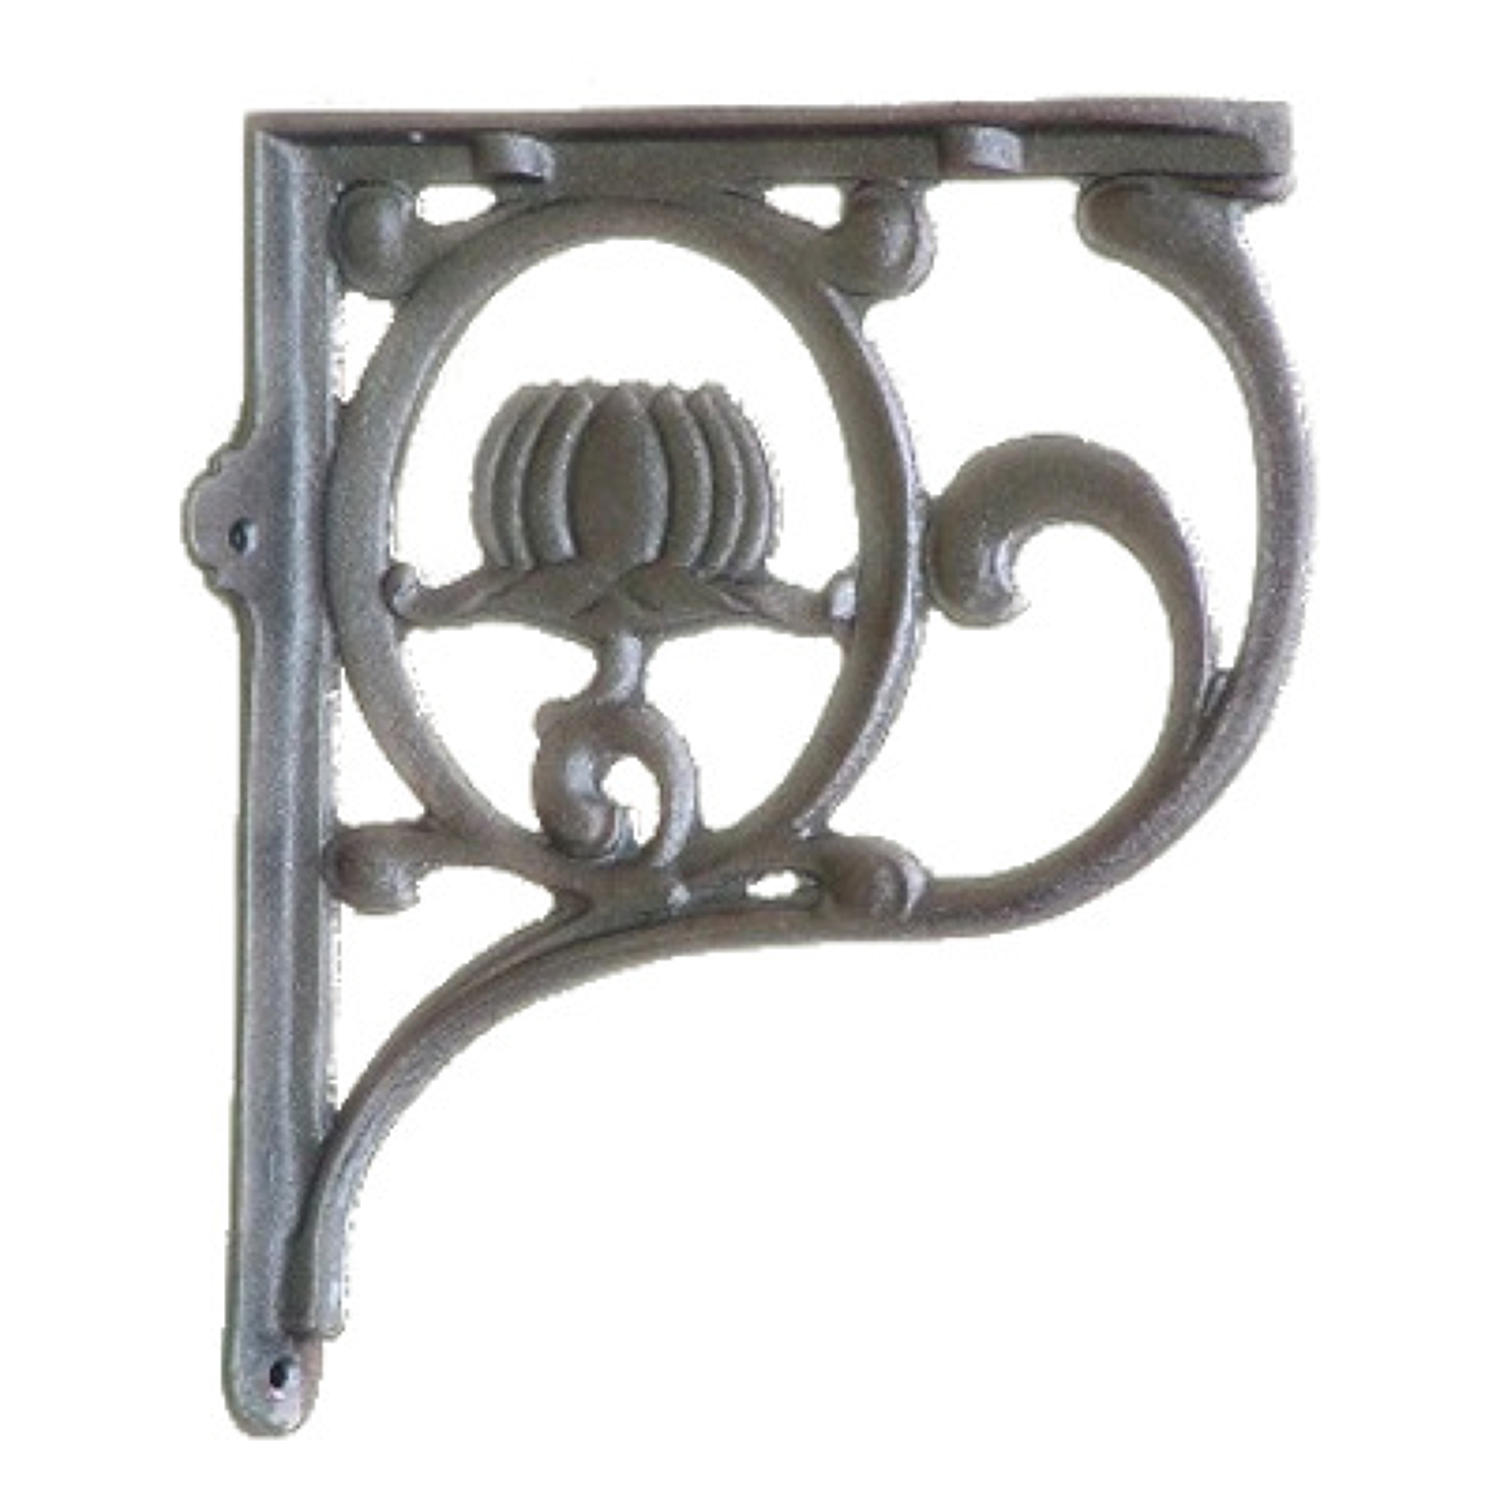 Decorative Cast Iron Art Nouveau Shelf Bracket